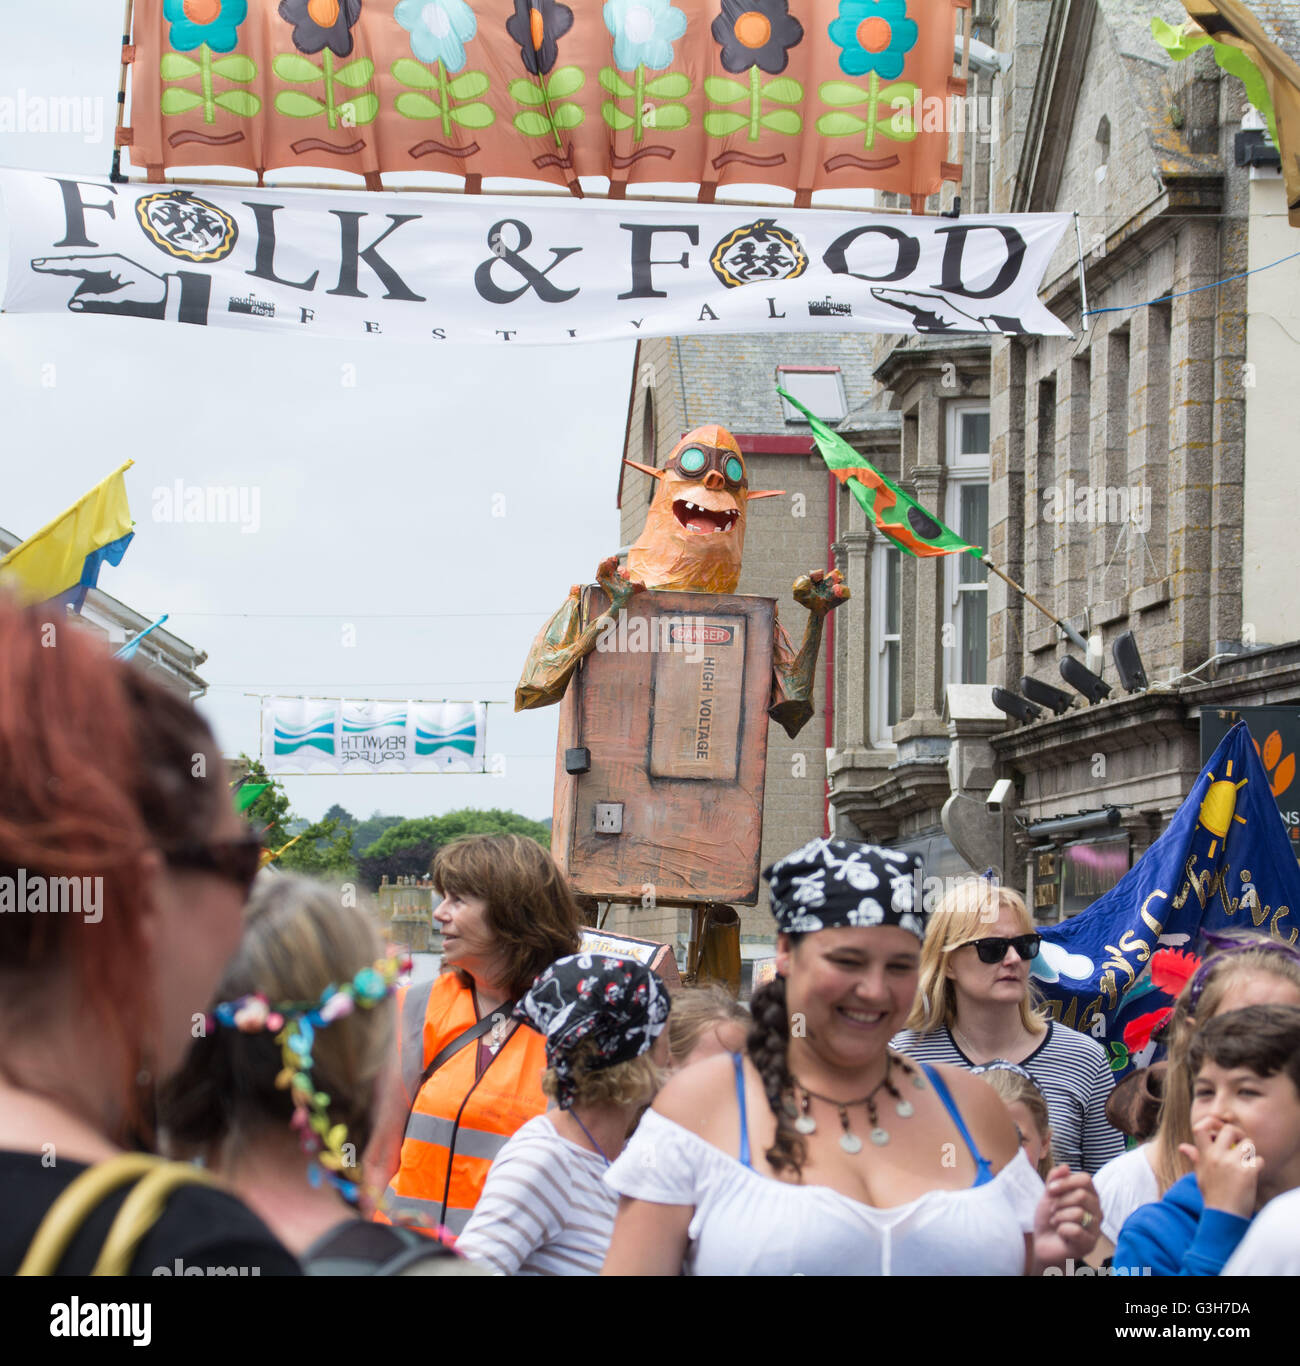 Penzance, Cornwall, UK. 24th June 2016. At the end of the Golowan ( Cornish for Midsummer)  festival at Penzance - Stock Image